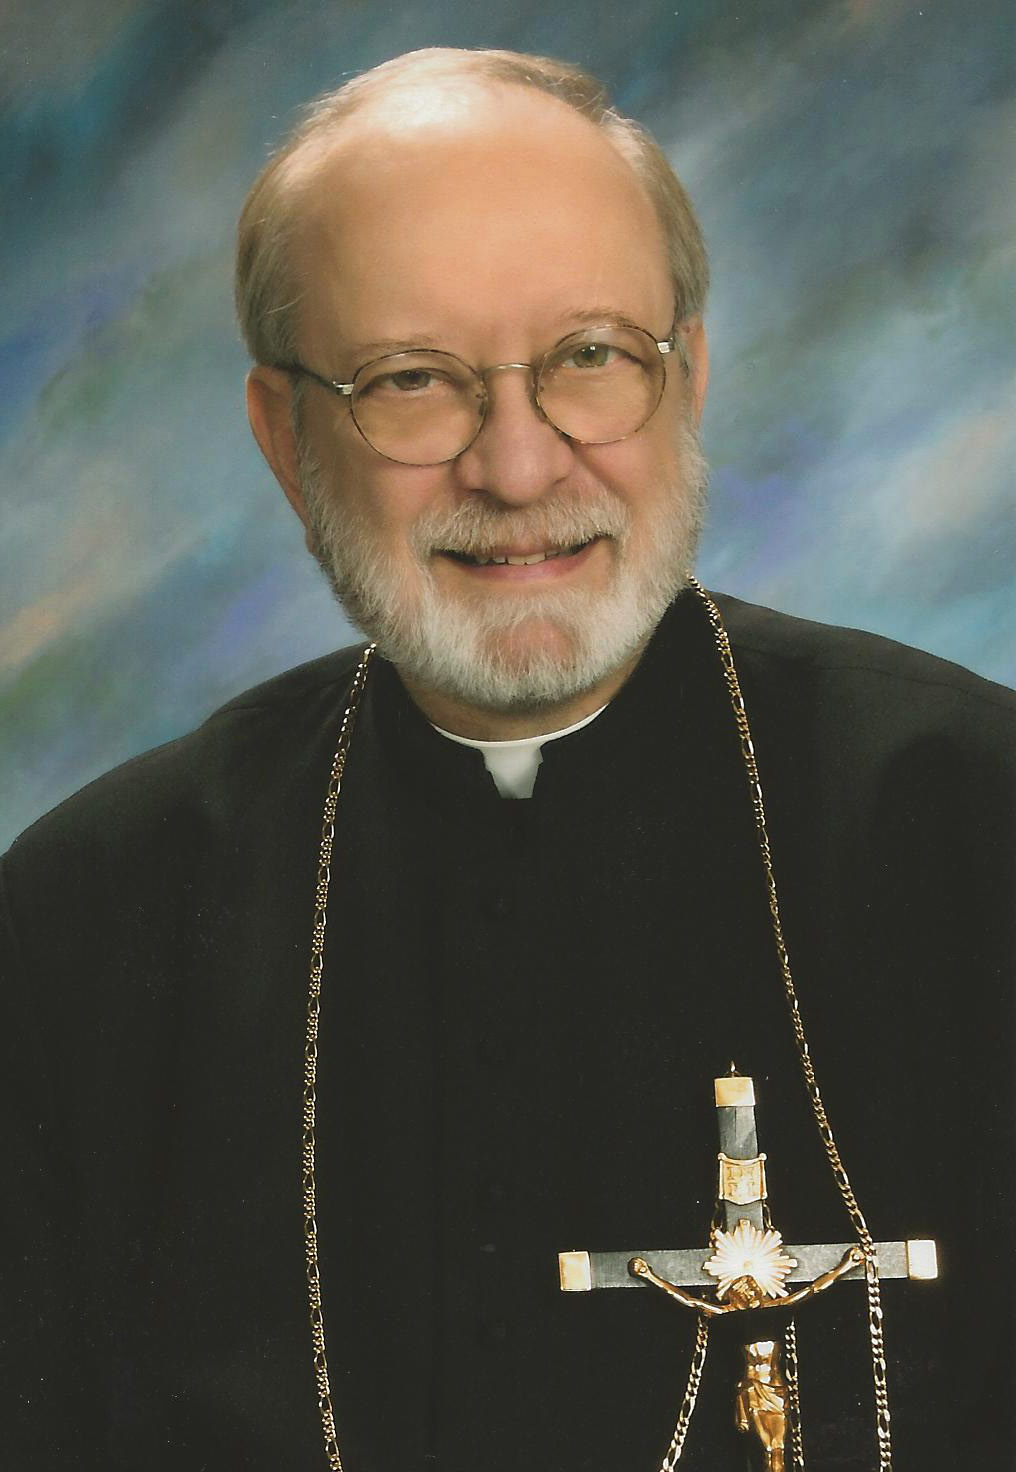 Missionary of Mercy Talks About Ministry